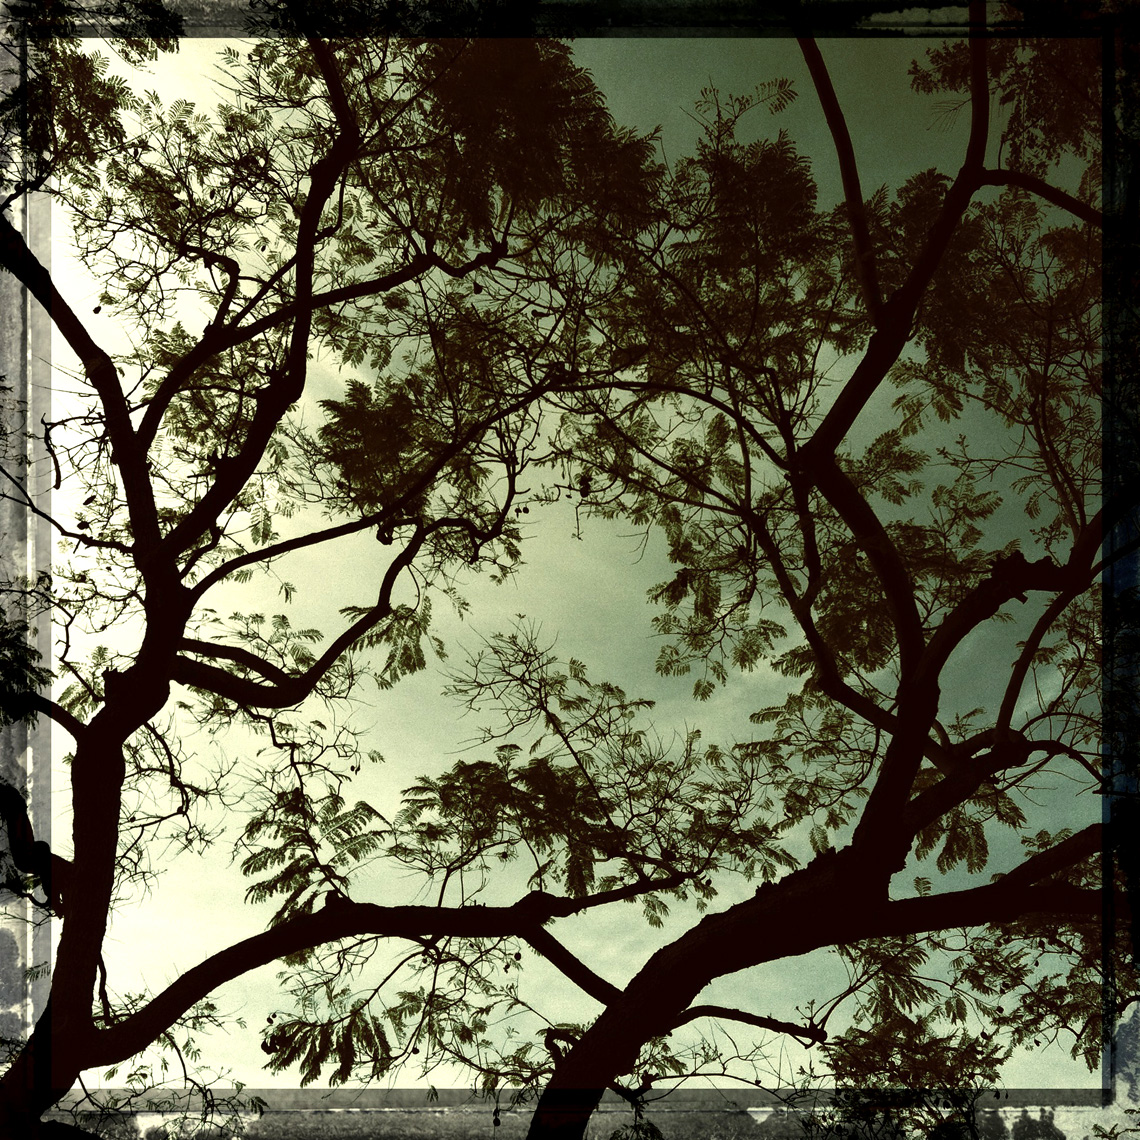 Los Angeles Dog Photography, Michael Brian, Tree silhouette, iphone photography, iPhoneography